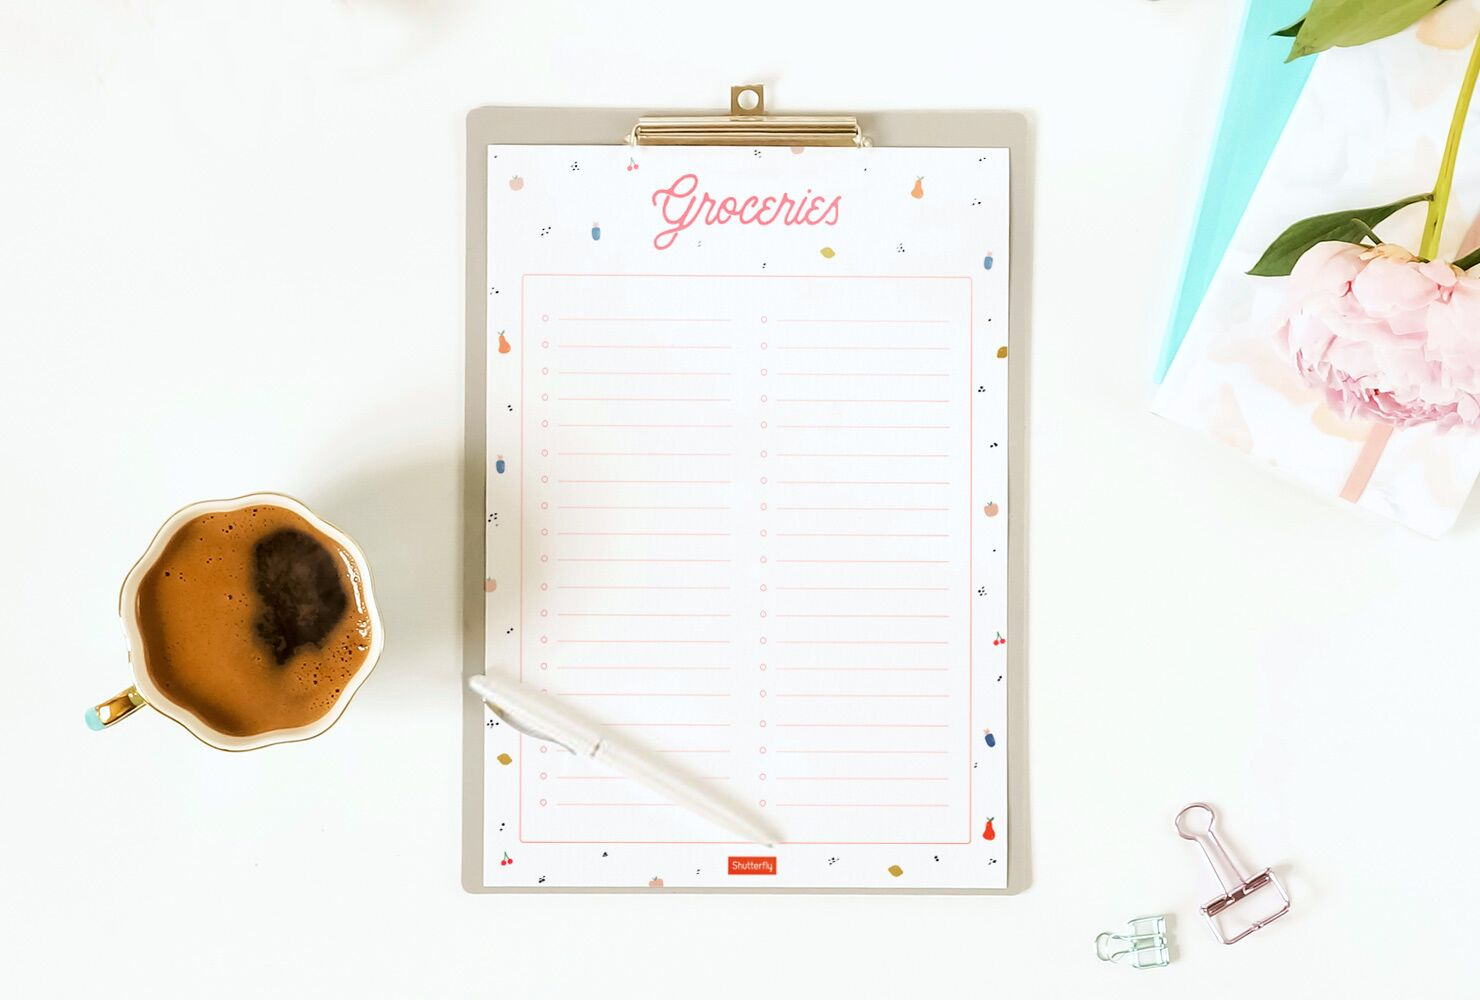 Need a List?! - Check out this free printable from Shutterfly!